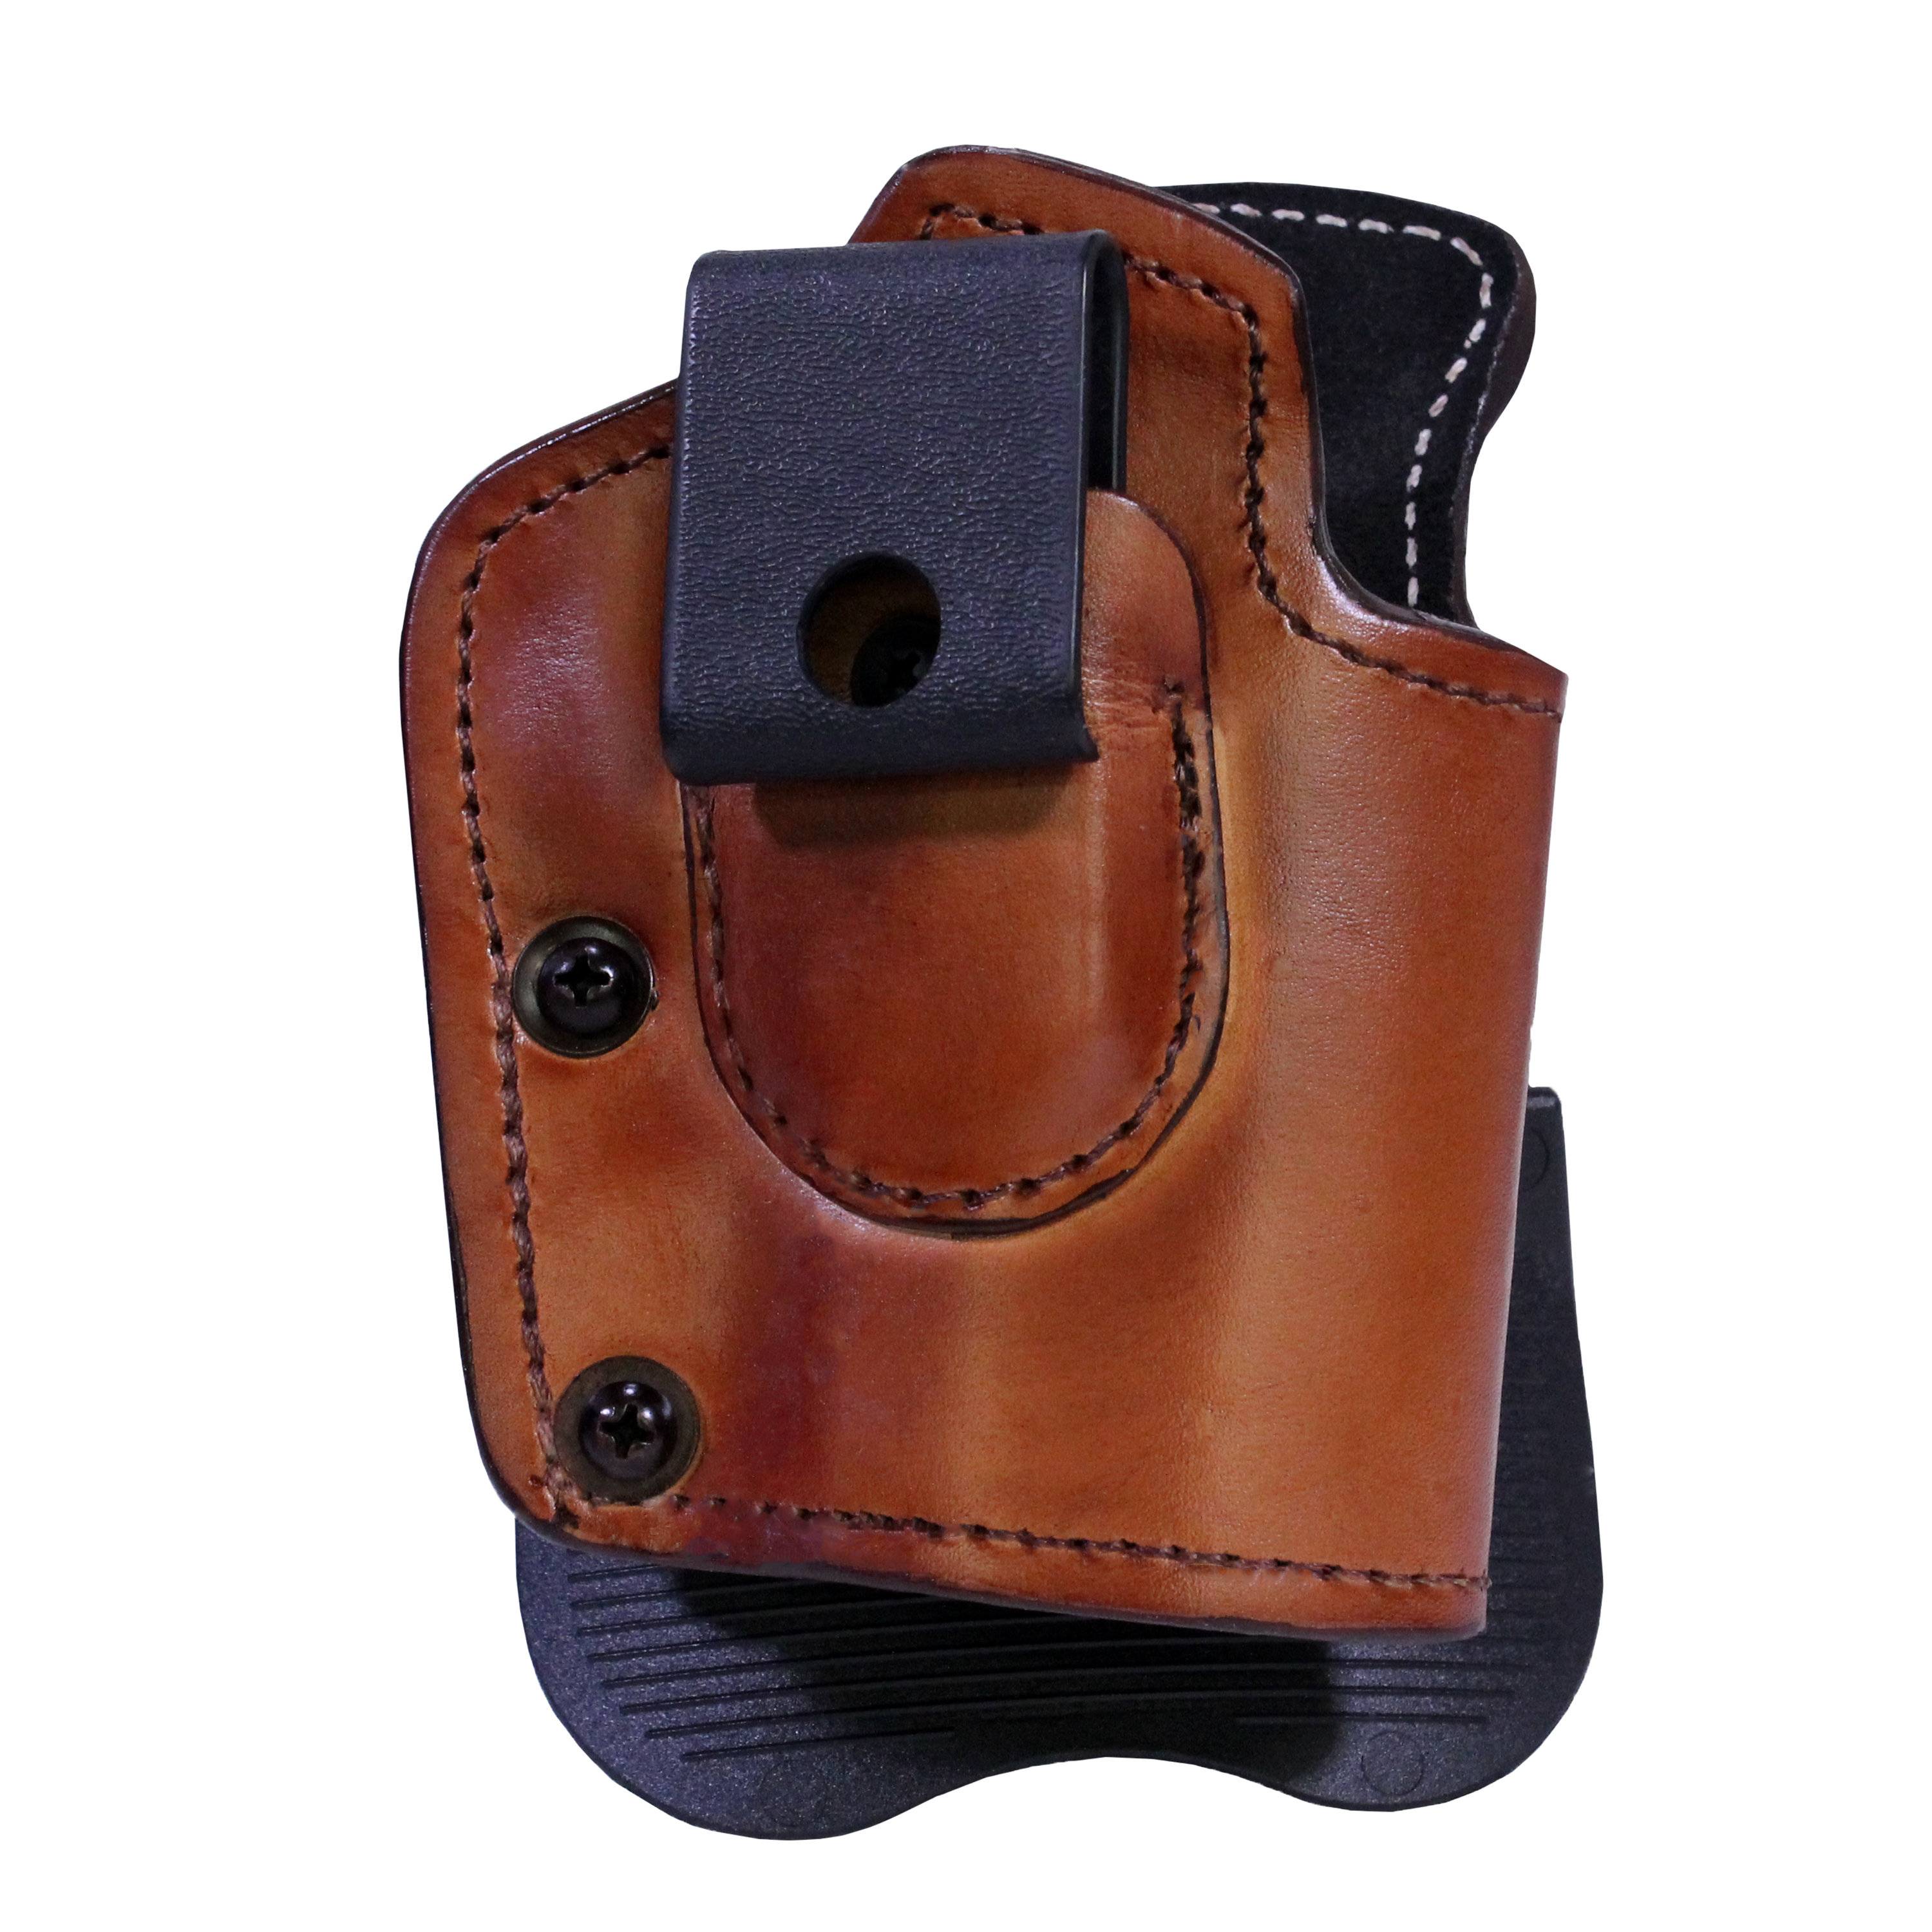 """Frontline Inside Outside Multi Function Leather Holster Taurus 24/7 with 4"""" Barrel, Ambidextrous , Brown with Suede Lining"""